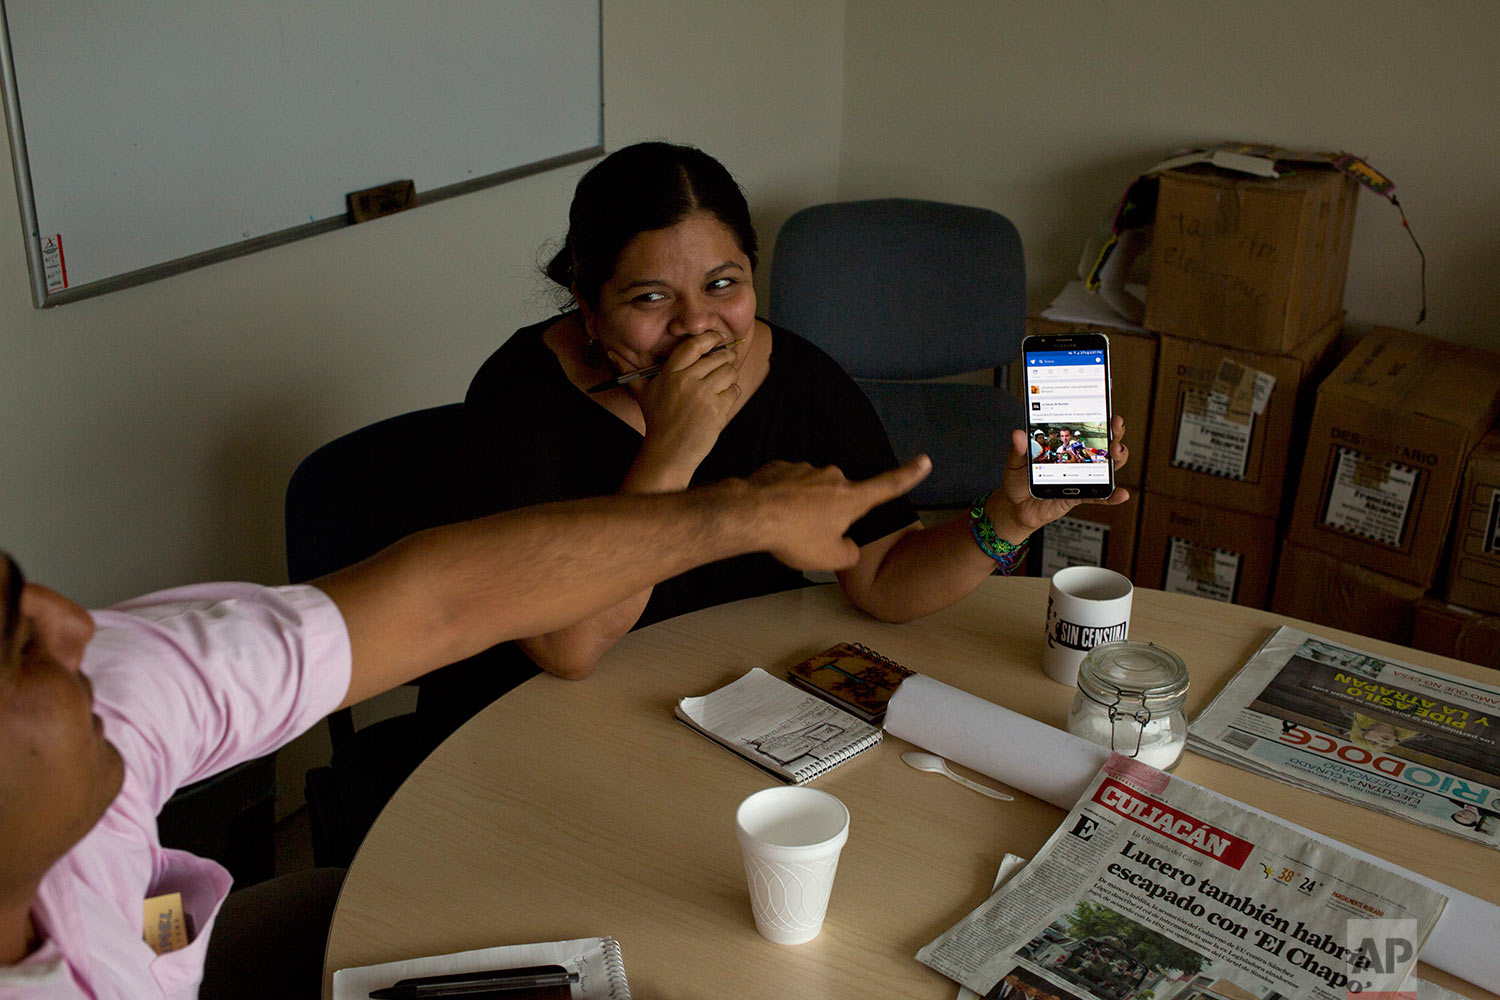 In this June 26 2017 photo, reporter Miriam Ramirez shows a picture on her cellphone to a co-worker during a Riodoce editorial meeting in Culiacan, Sinaloa state, Mexico. After the killing of Riodoce co-founder Javier Valdez on May 15 and with an increase in killings of journalists nationwide, the paper's reporters are told by security experts that, among other things, it's important to change their routines, be more careful with social media and not leave colleagues alone in the office at night. (AP Photo/Enric Marti)